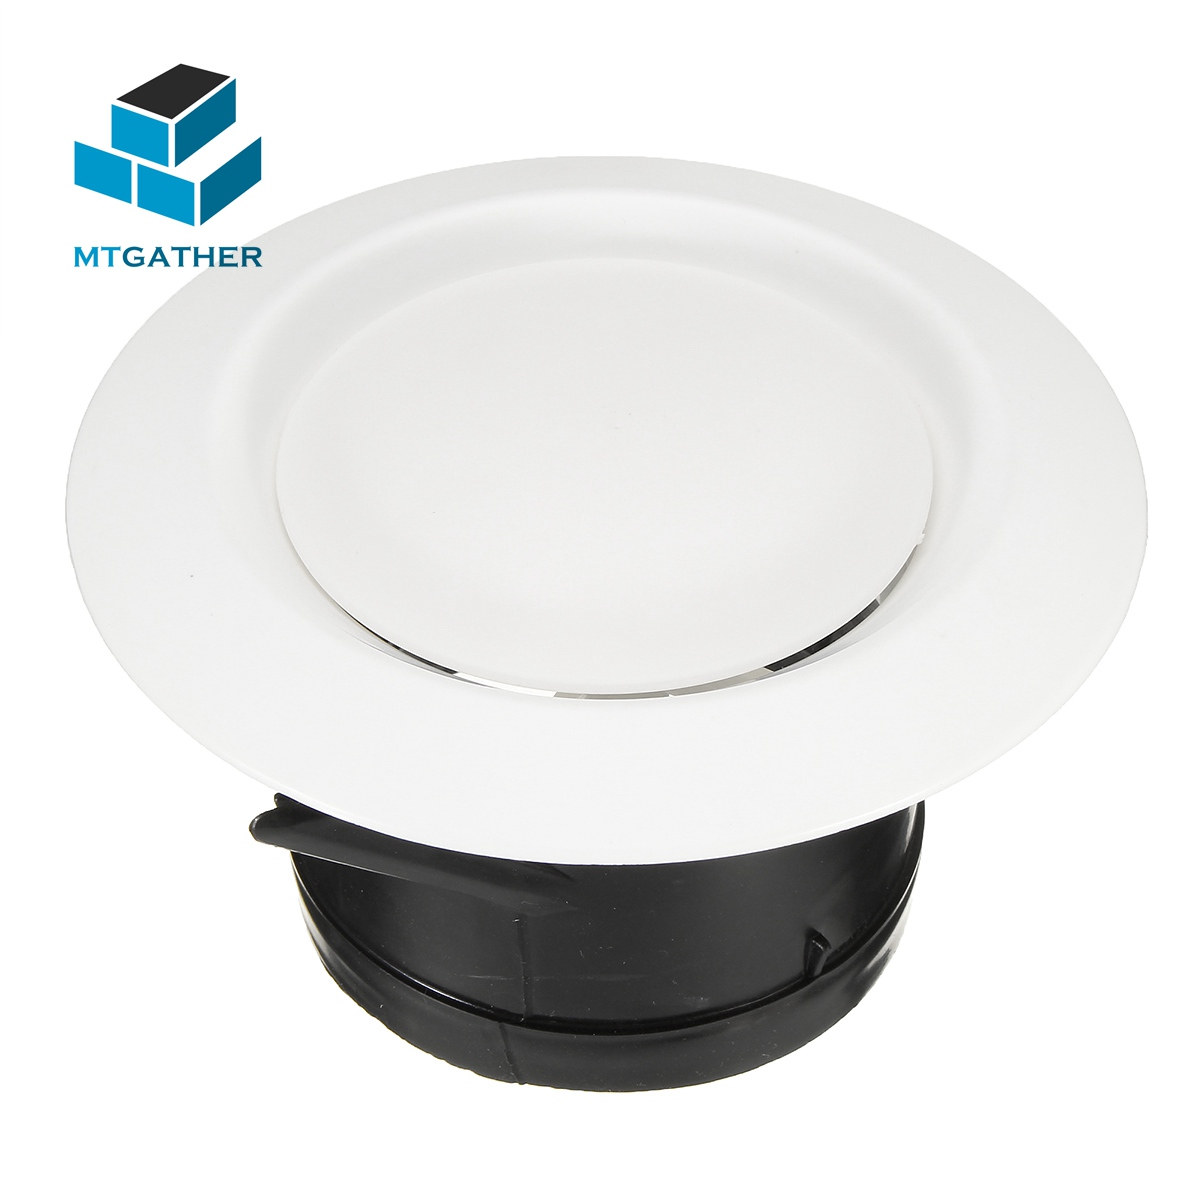 MTGATHER Ventilation Grille Vents Air Grille Round Round Air Vent ABS Louver Grille Cover Heating Cooling Vents